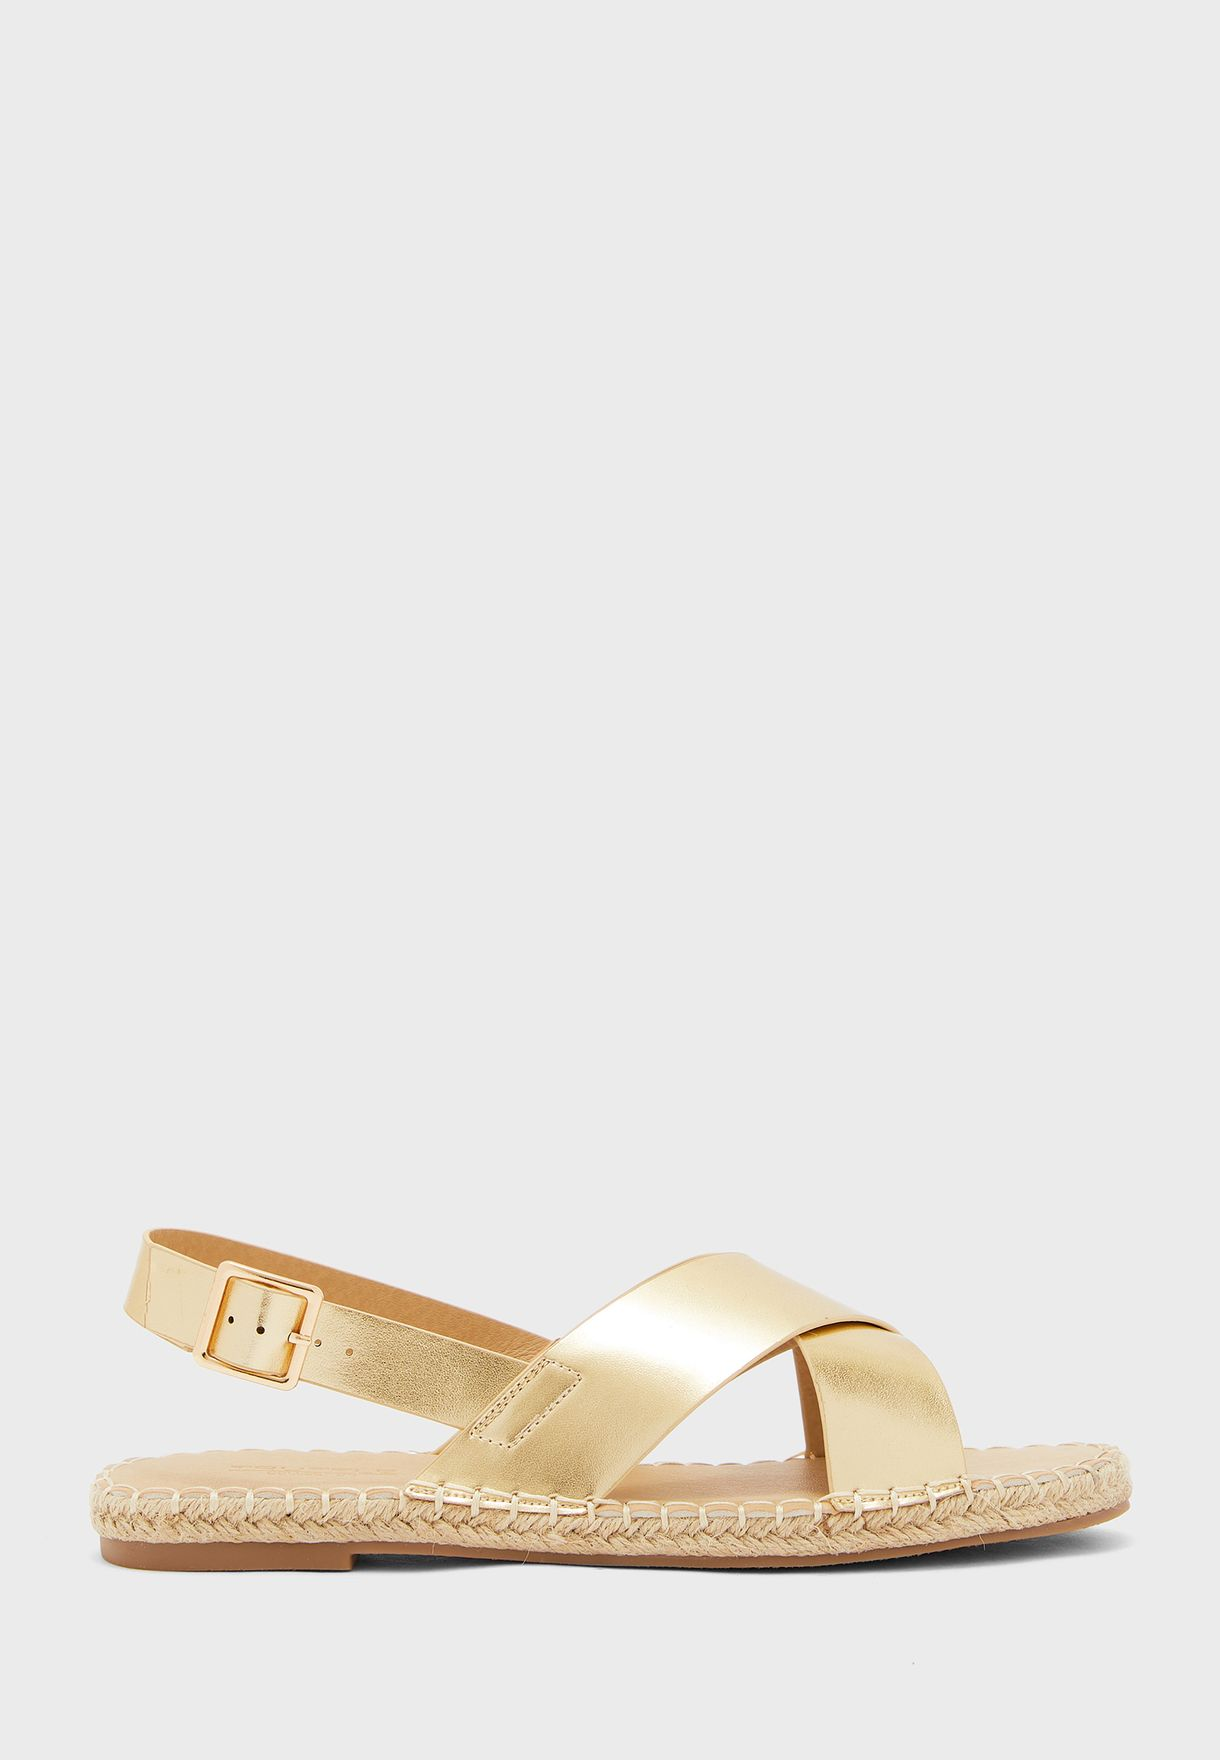 Cross Strap Espadrille Flat Sandals